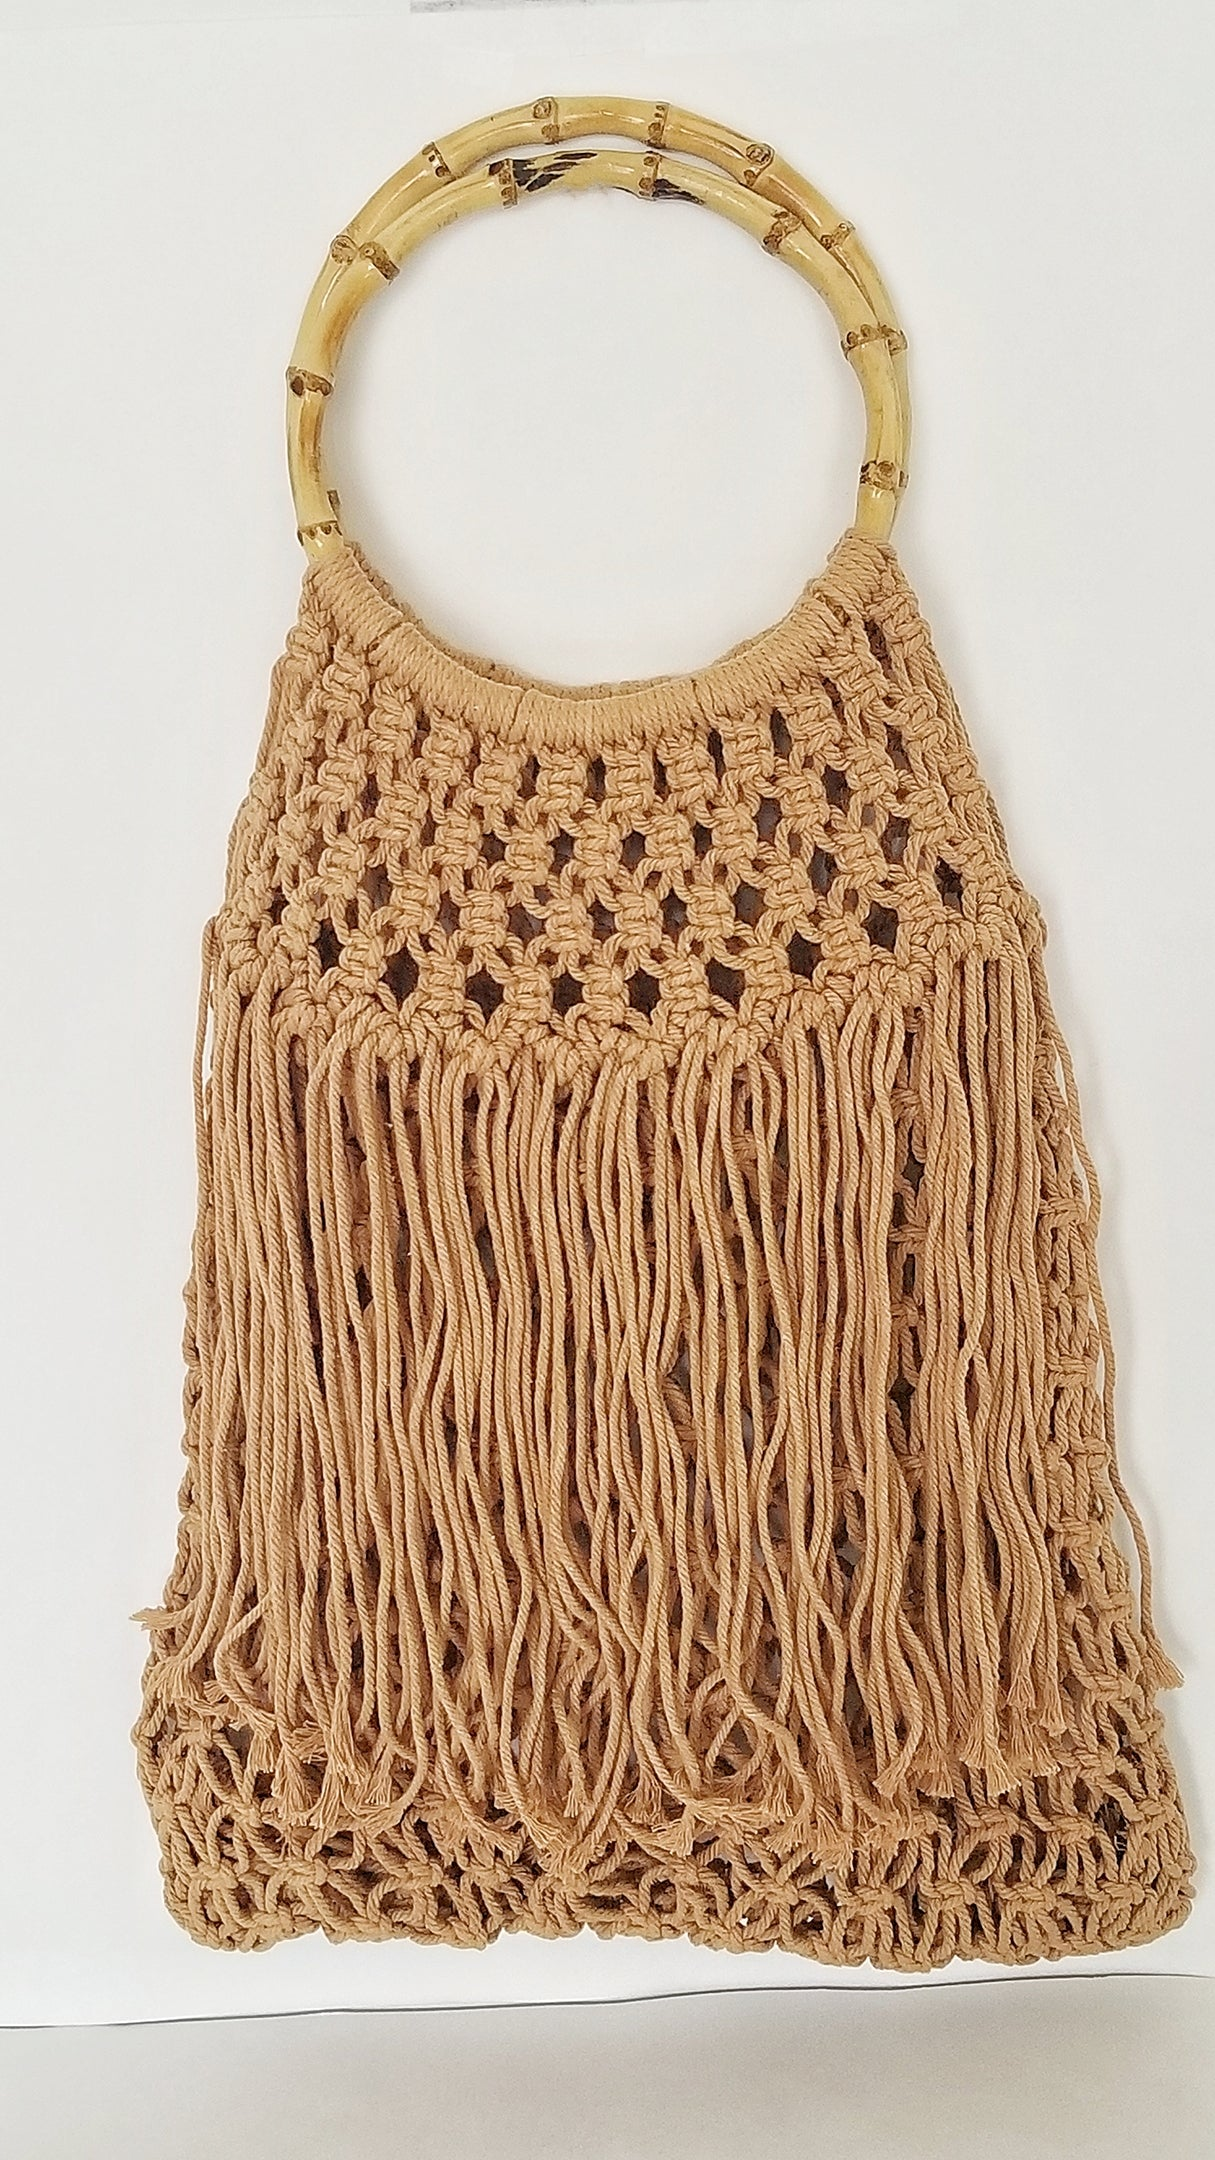 Willow Woven Tote